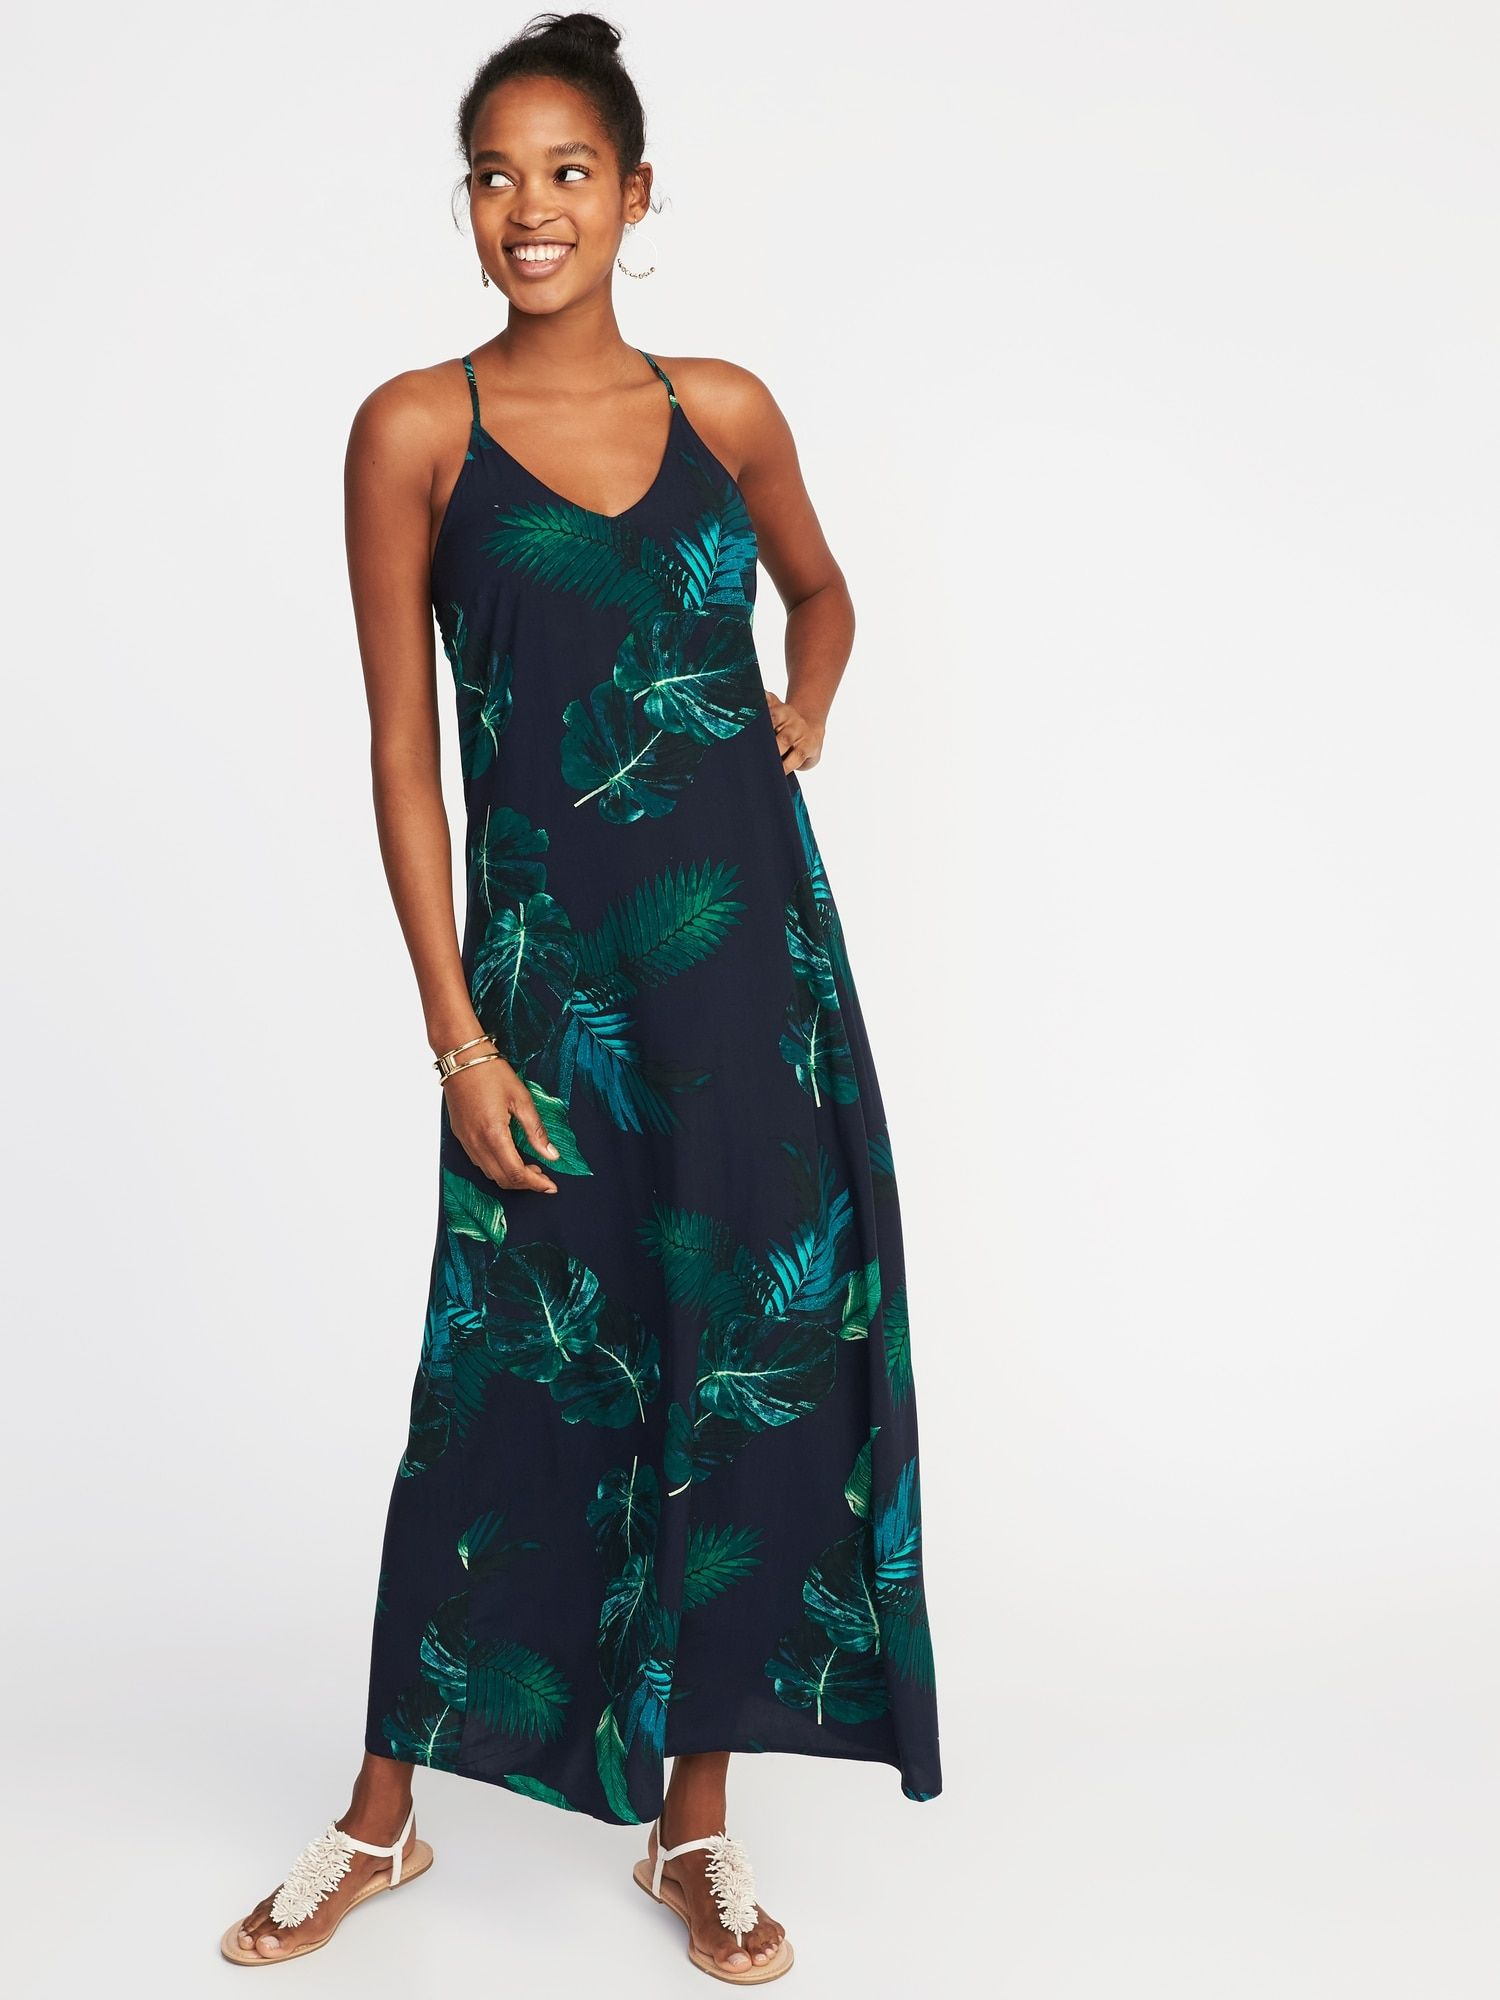 0d32a0a804a99 Sleeveless Floral Maxi Shift Dress for Women|old-navy | Wishlist ...